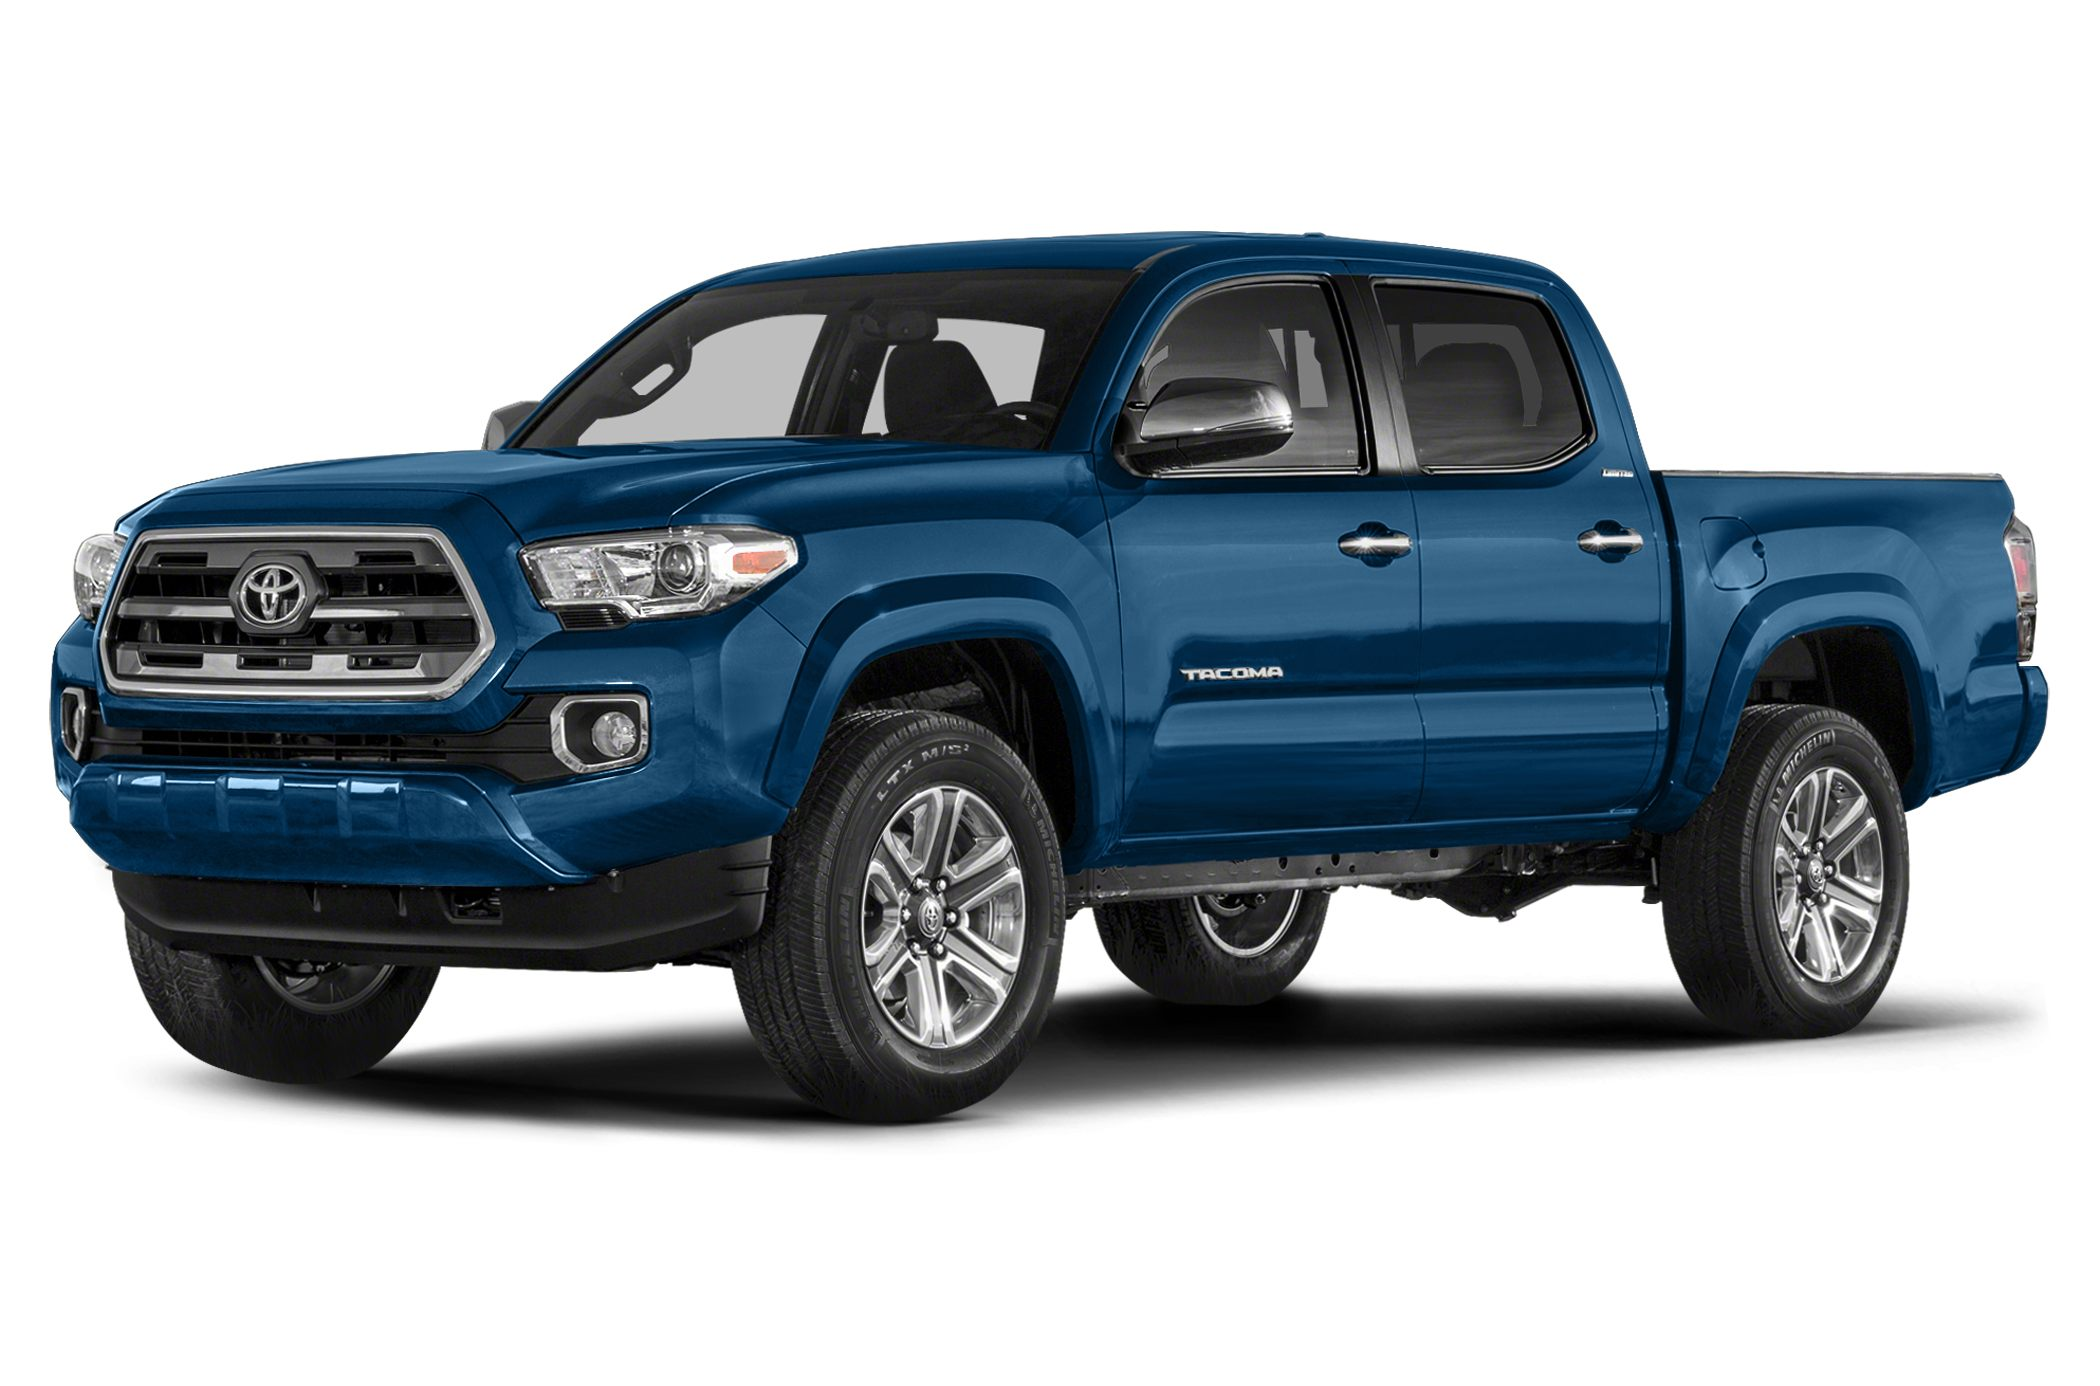 2016 toyota tacoma limited v6 4x2 double cab 127 4 in wb pricing and options. Black Bedroom Furniture Sets. Home Design Ideas